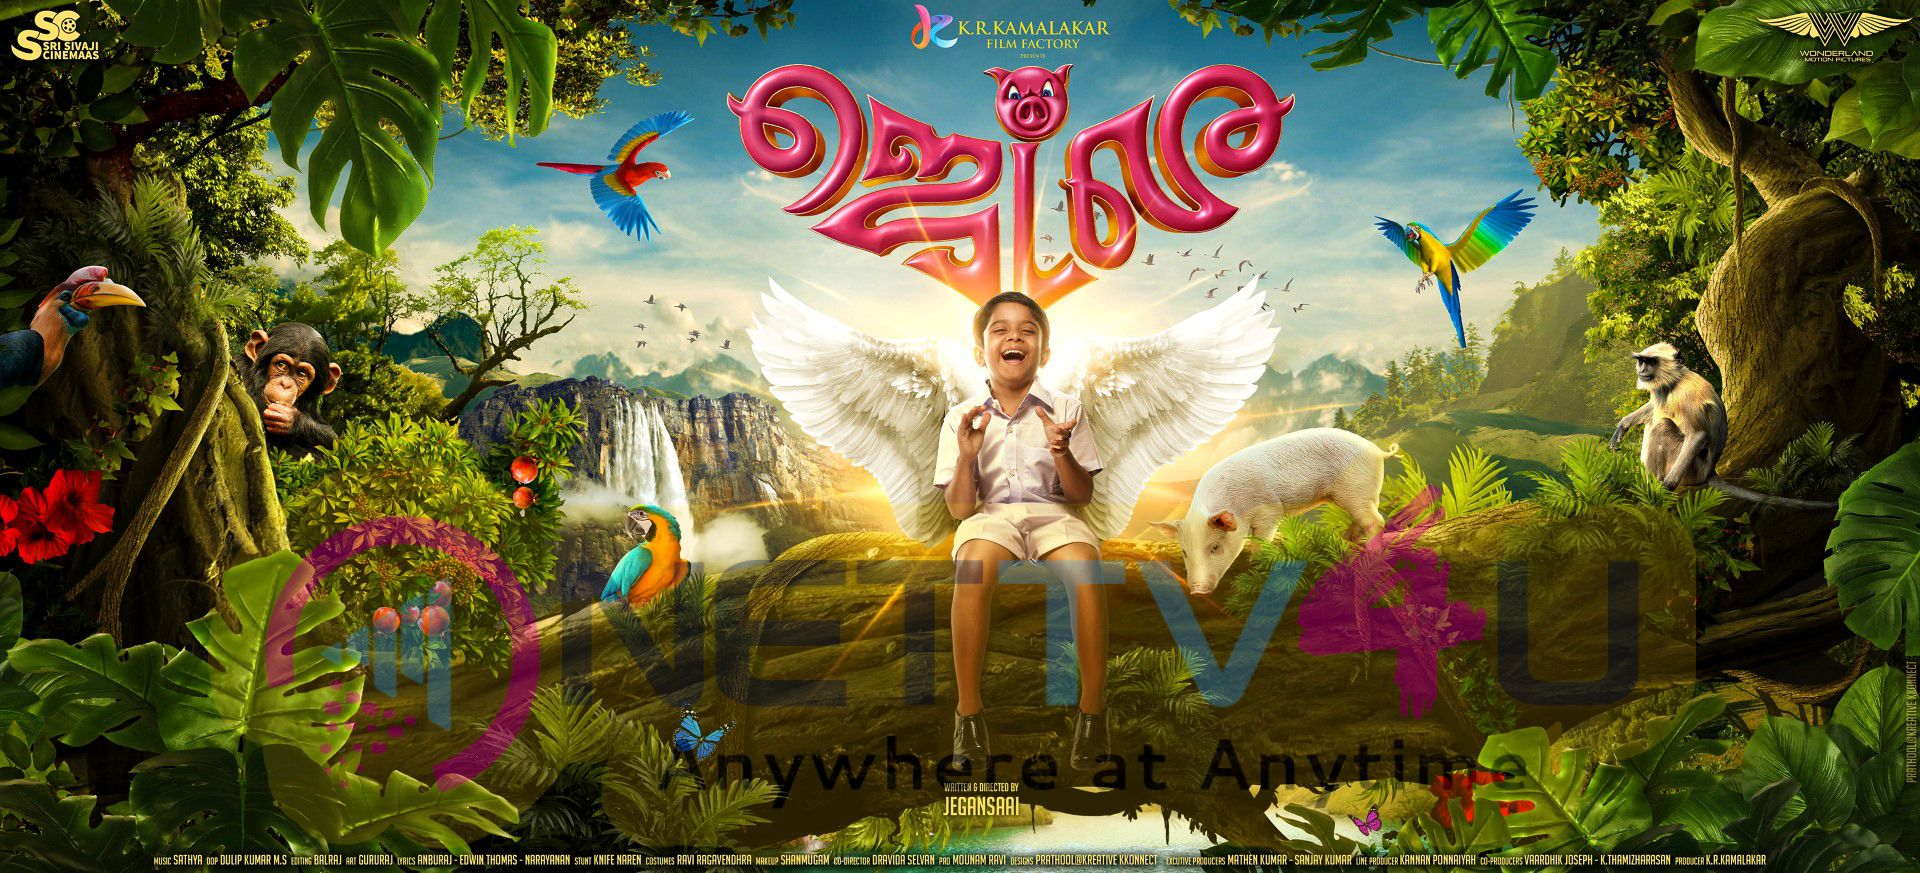 Tamil Movie Jet Lee First Look Charming Wallpapers